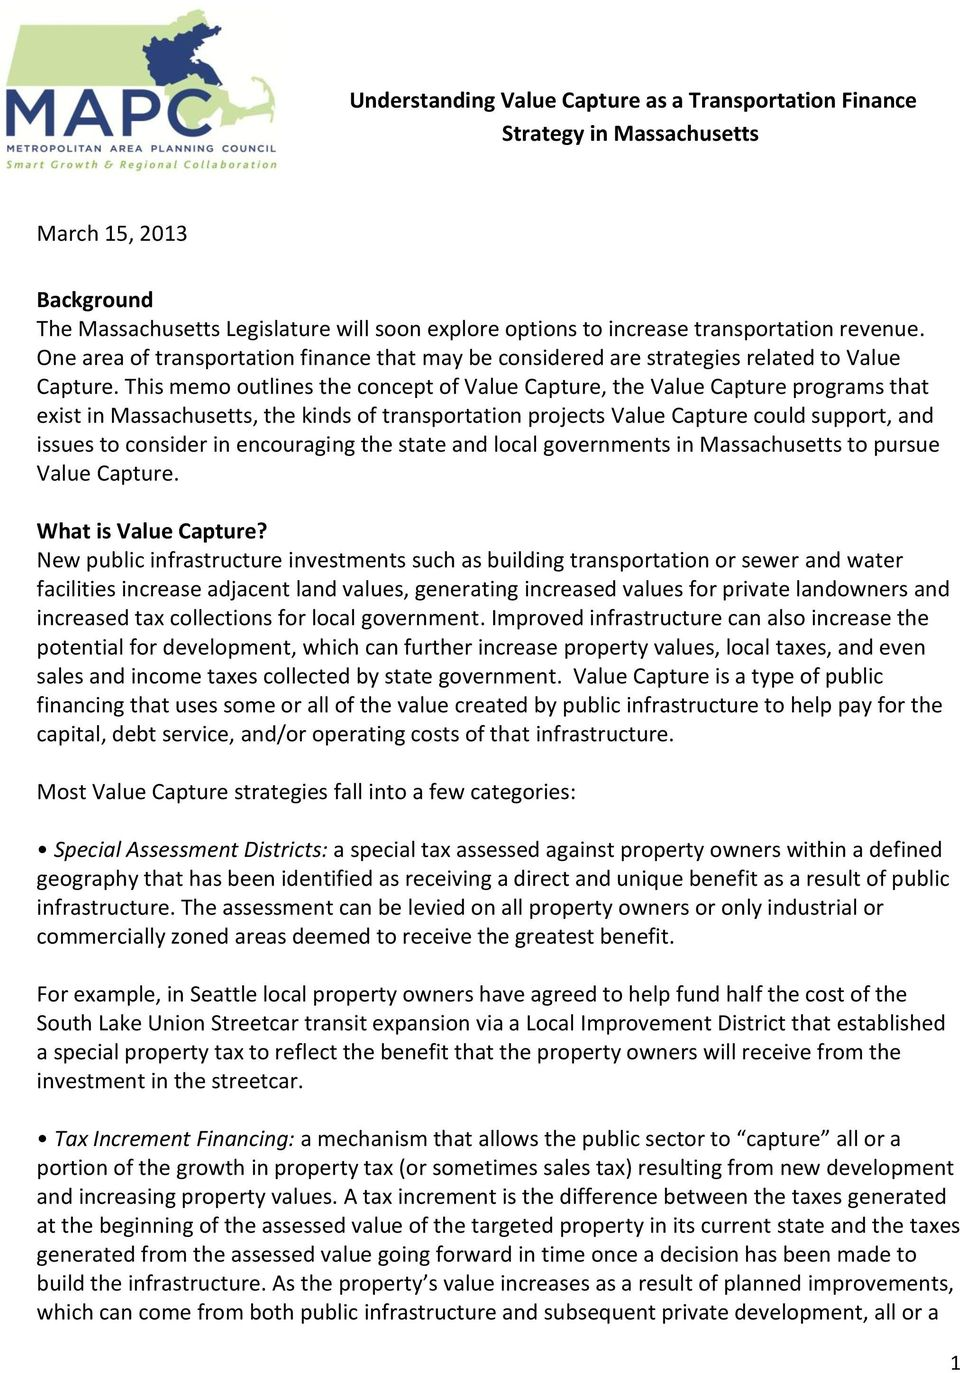 This memo outlines the concept of Value Capture, the Value Capture programs that exist in Massachusetts, the kinds of transportation projects Value Capture could support, and issues to consider in